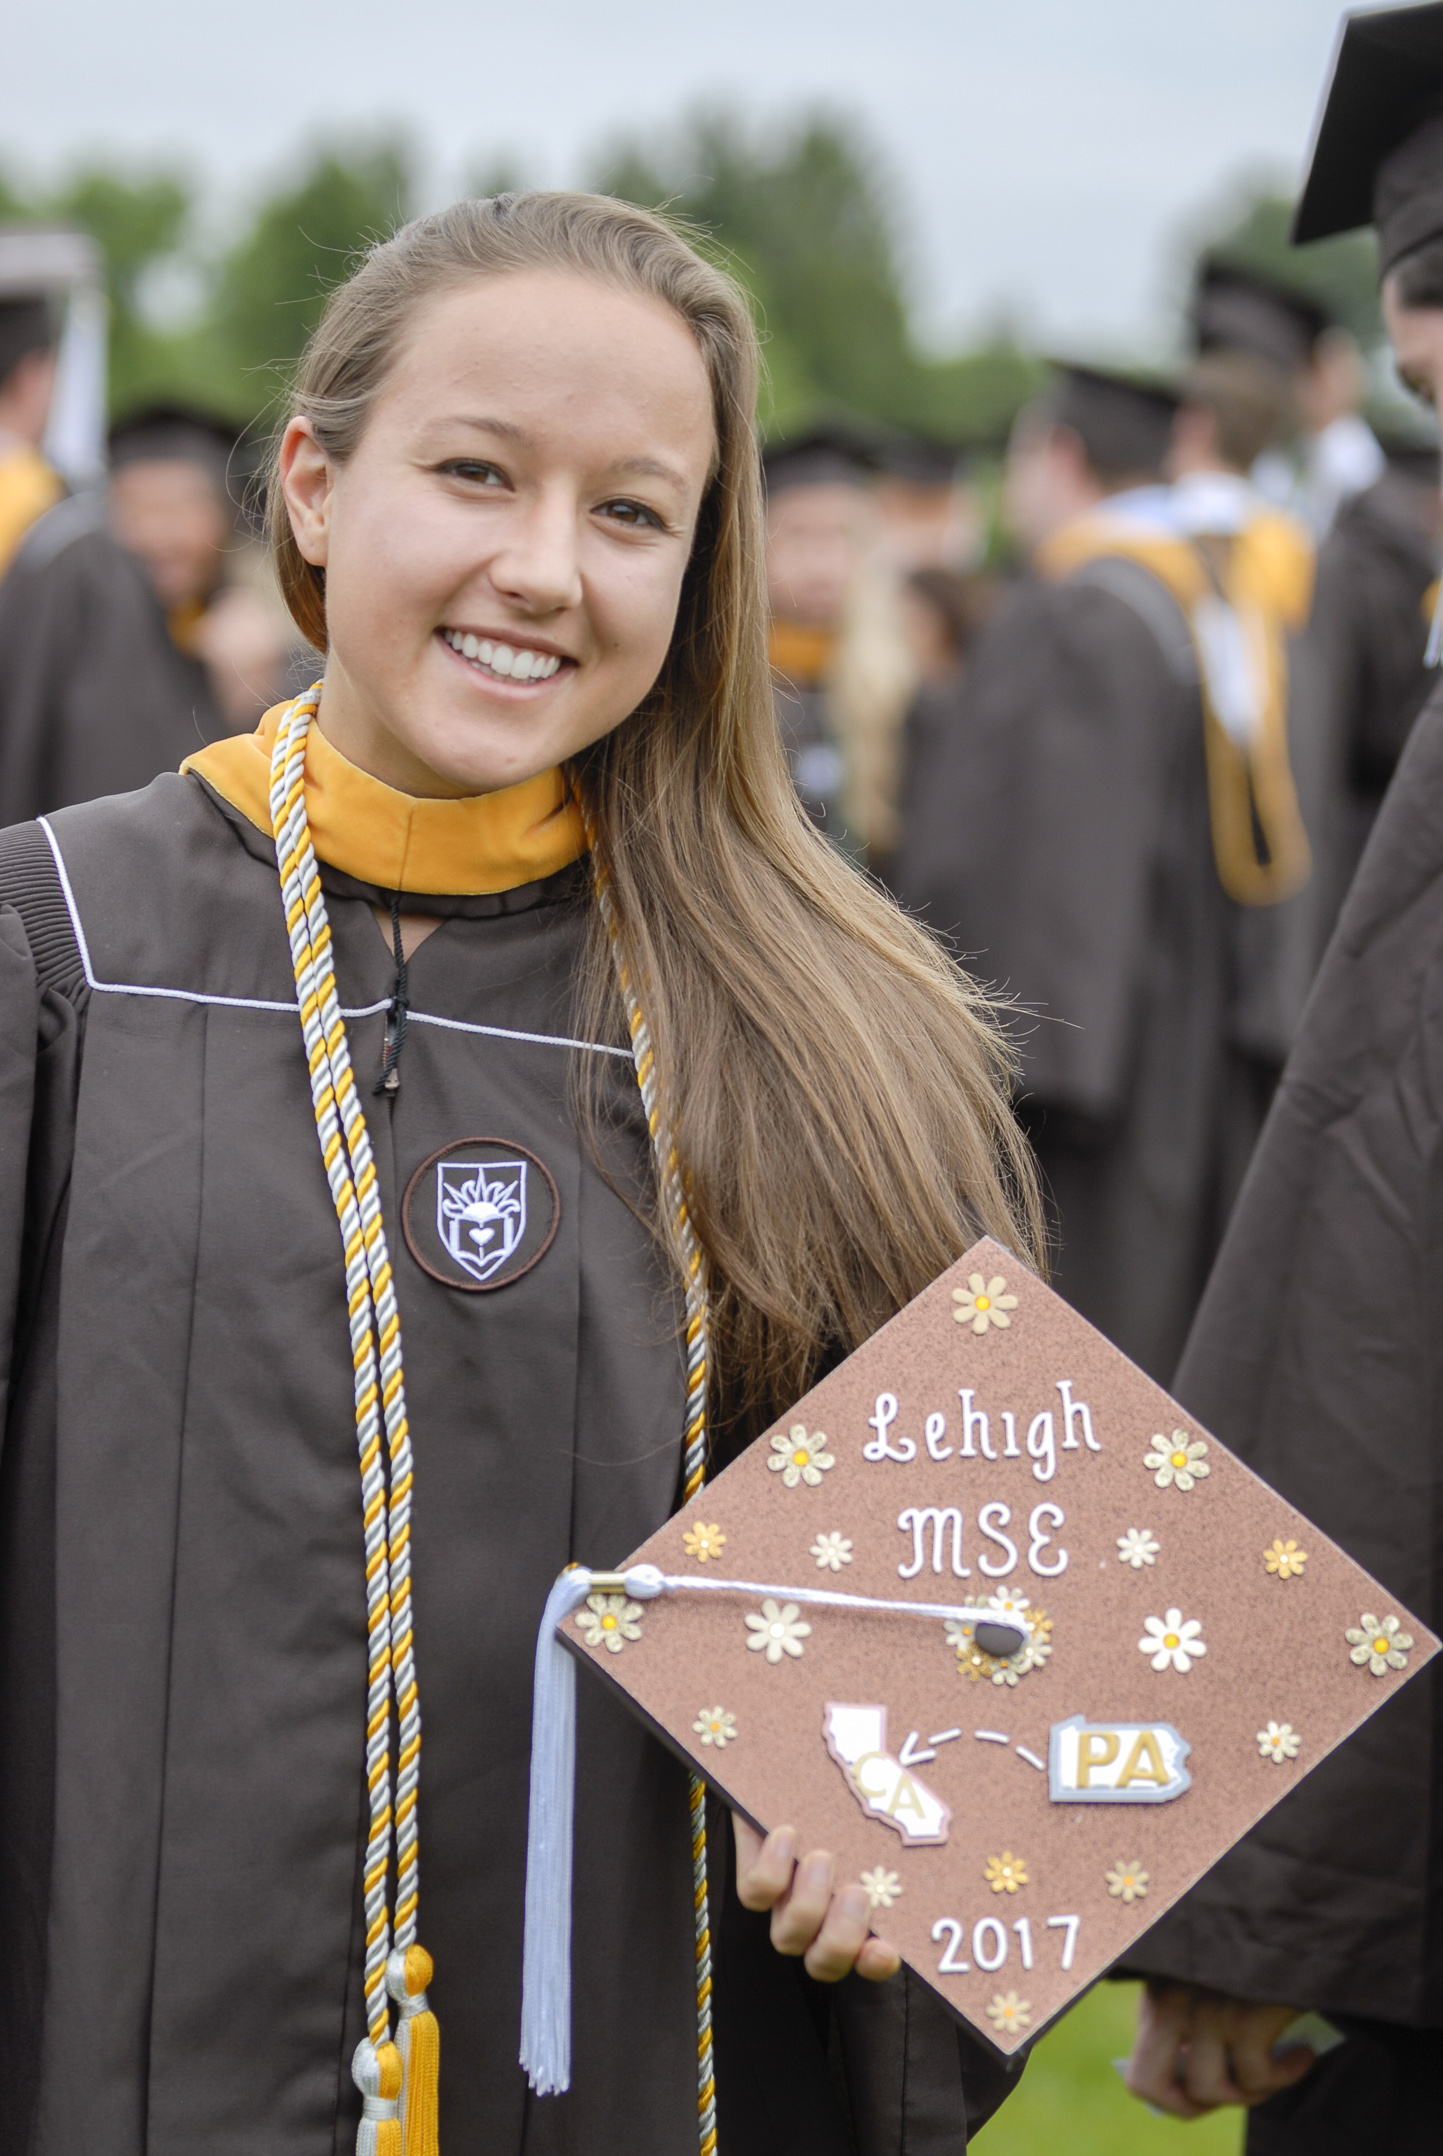 GALLERY Class of 2017 graduation caps The Brown and White